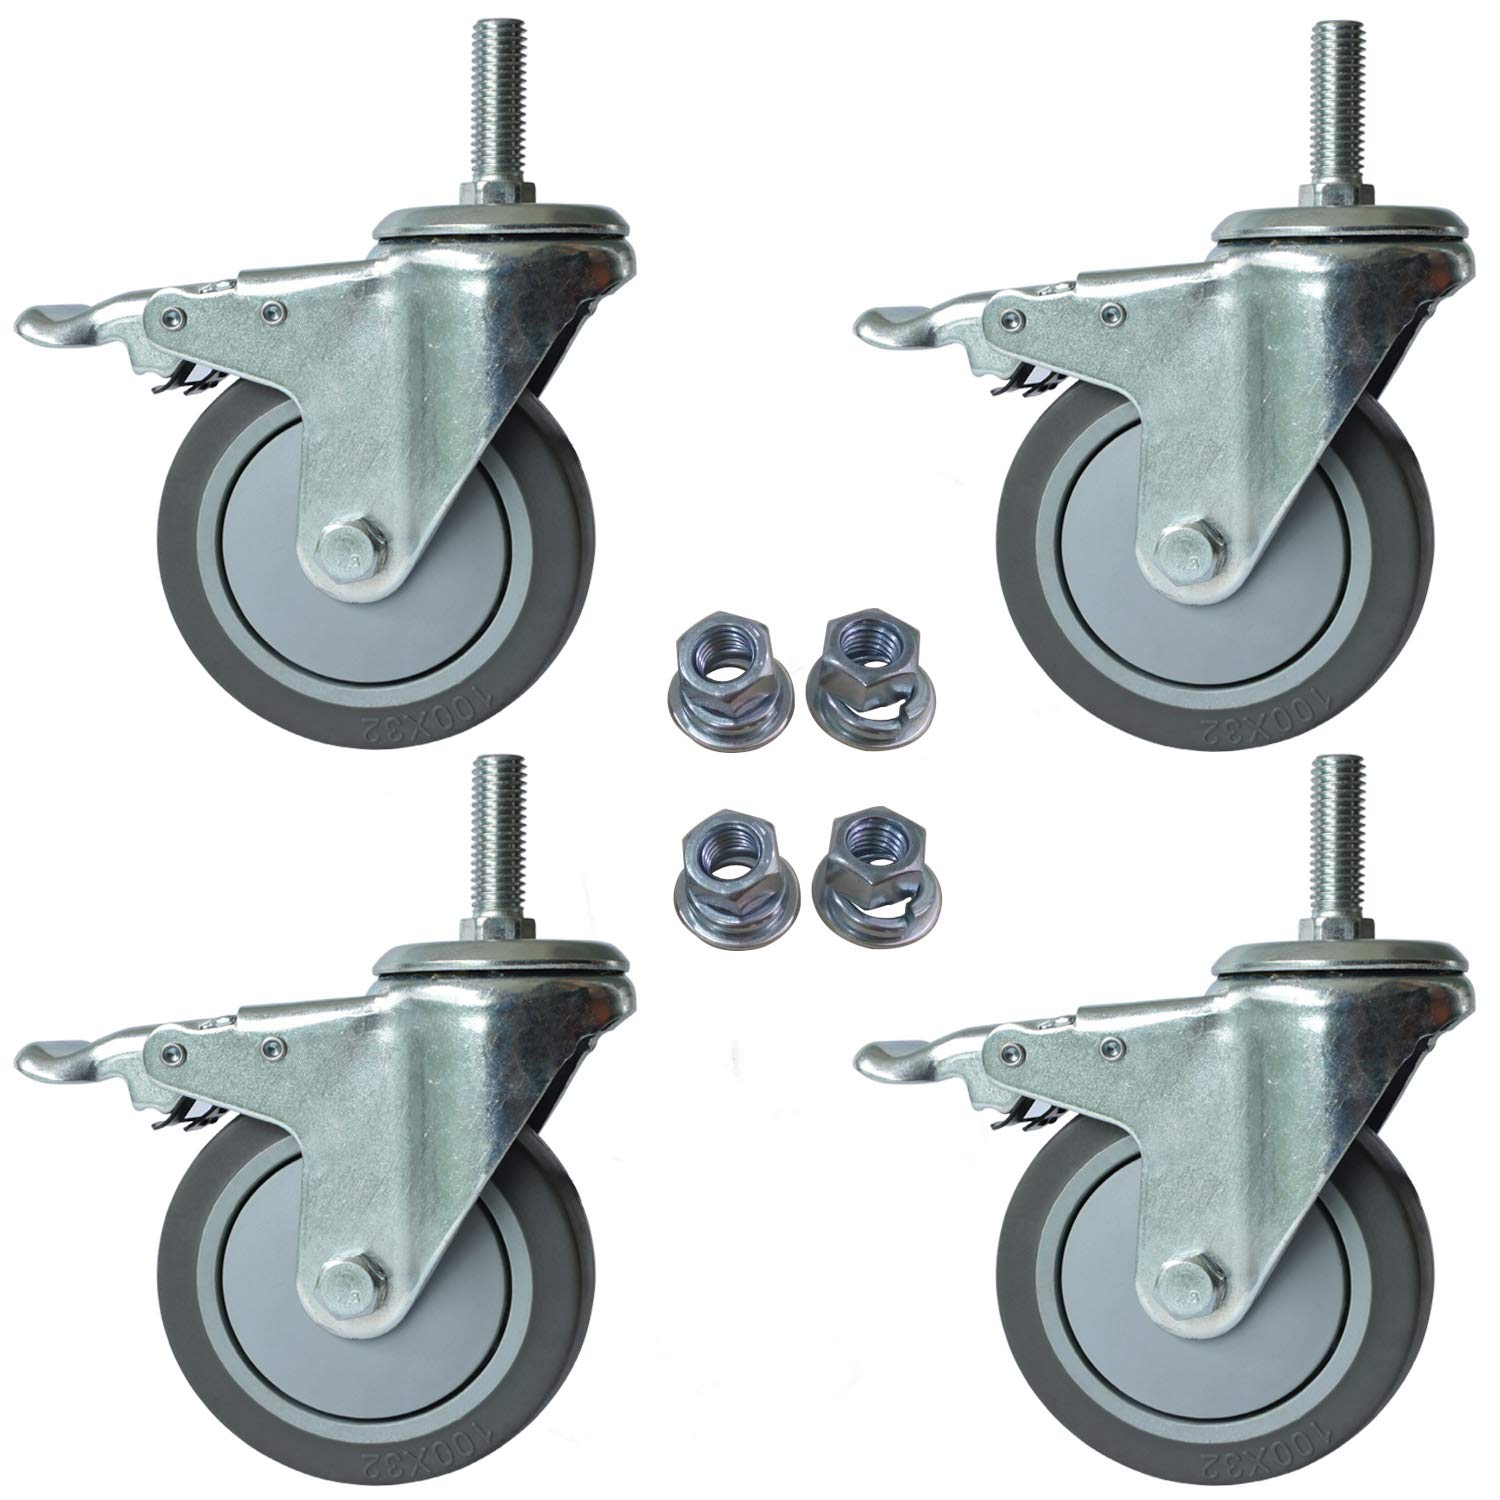 OuYi 4 Inch Brake Stem Casters 1/2''-13x1-1/2'', Swivel Stem Caster, Grey Polyurethane WheeI Industrial Castors Replacement for Carts Set of 4 OeCasterTPR100_1225EN by OuYi